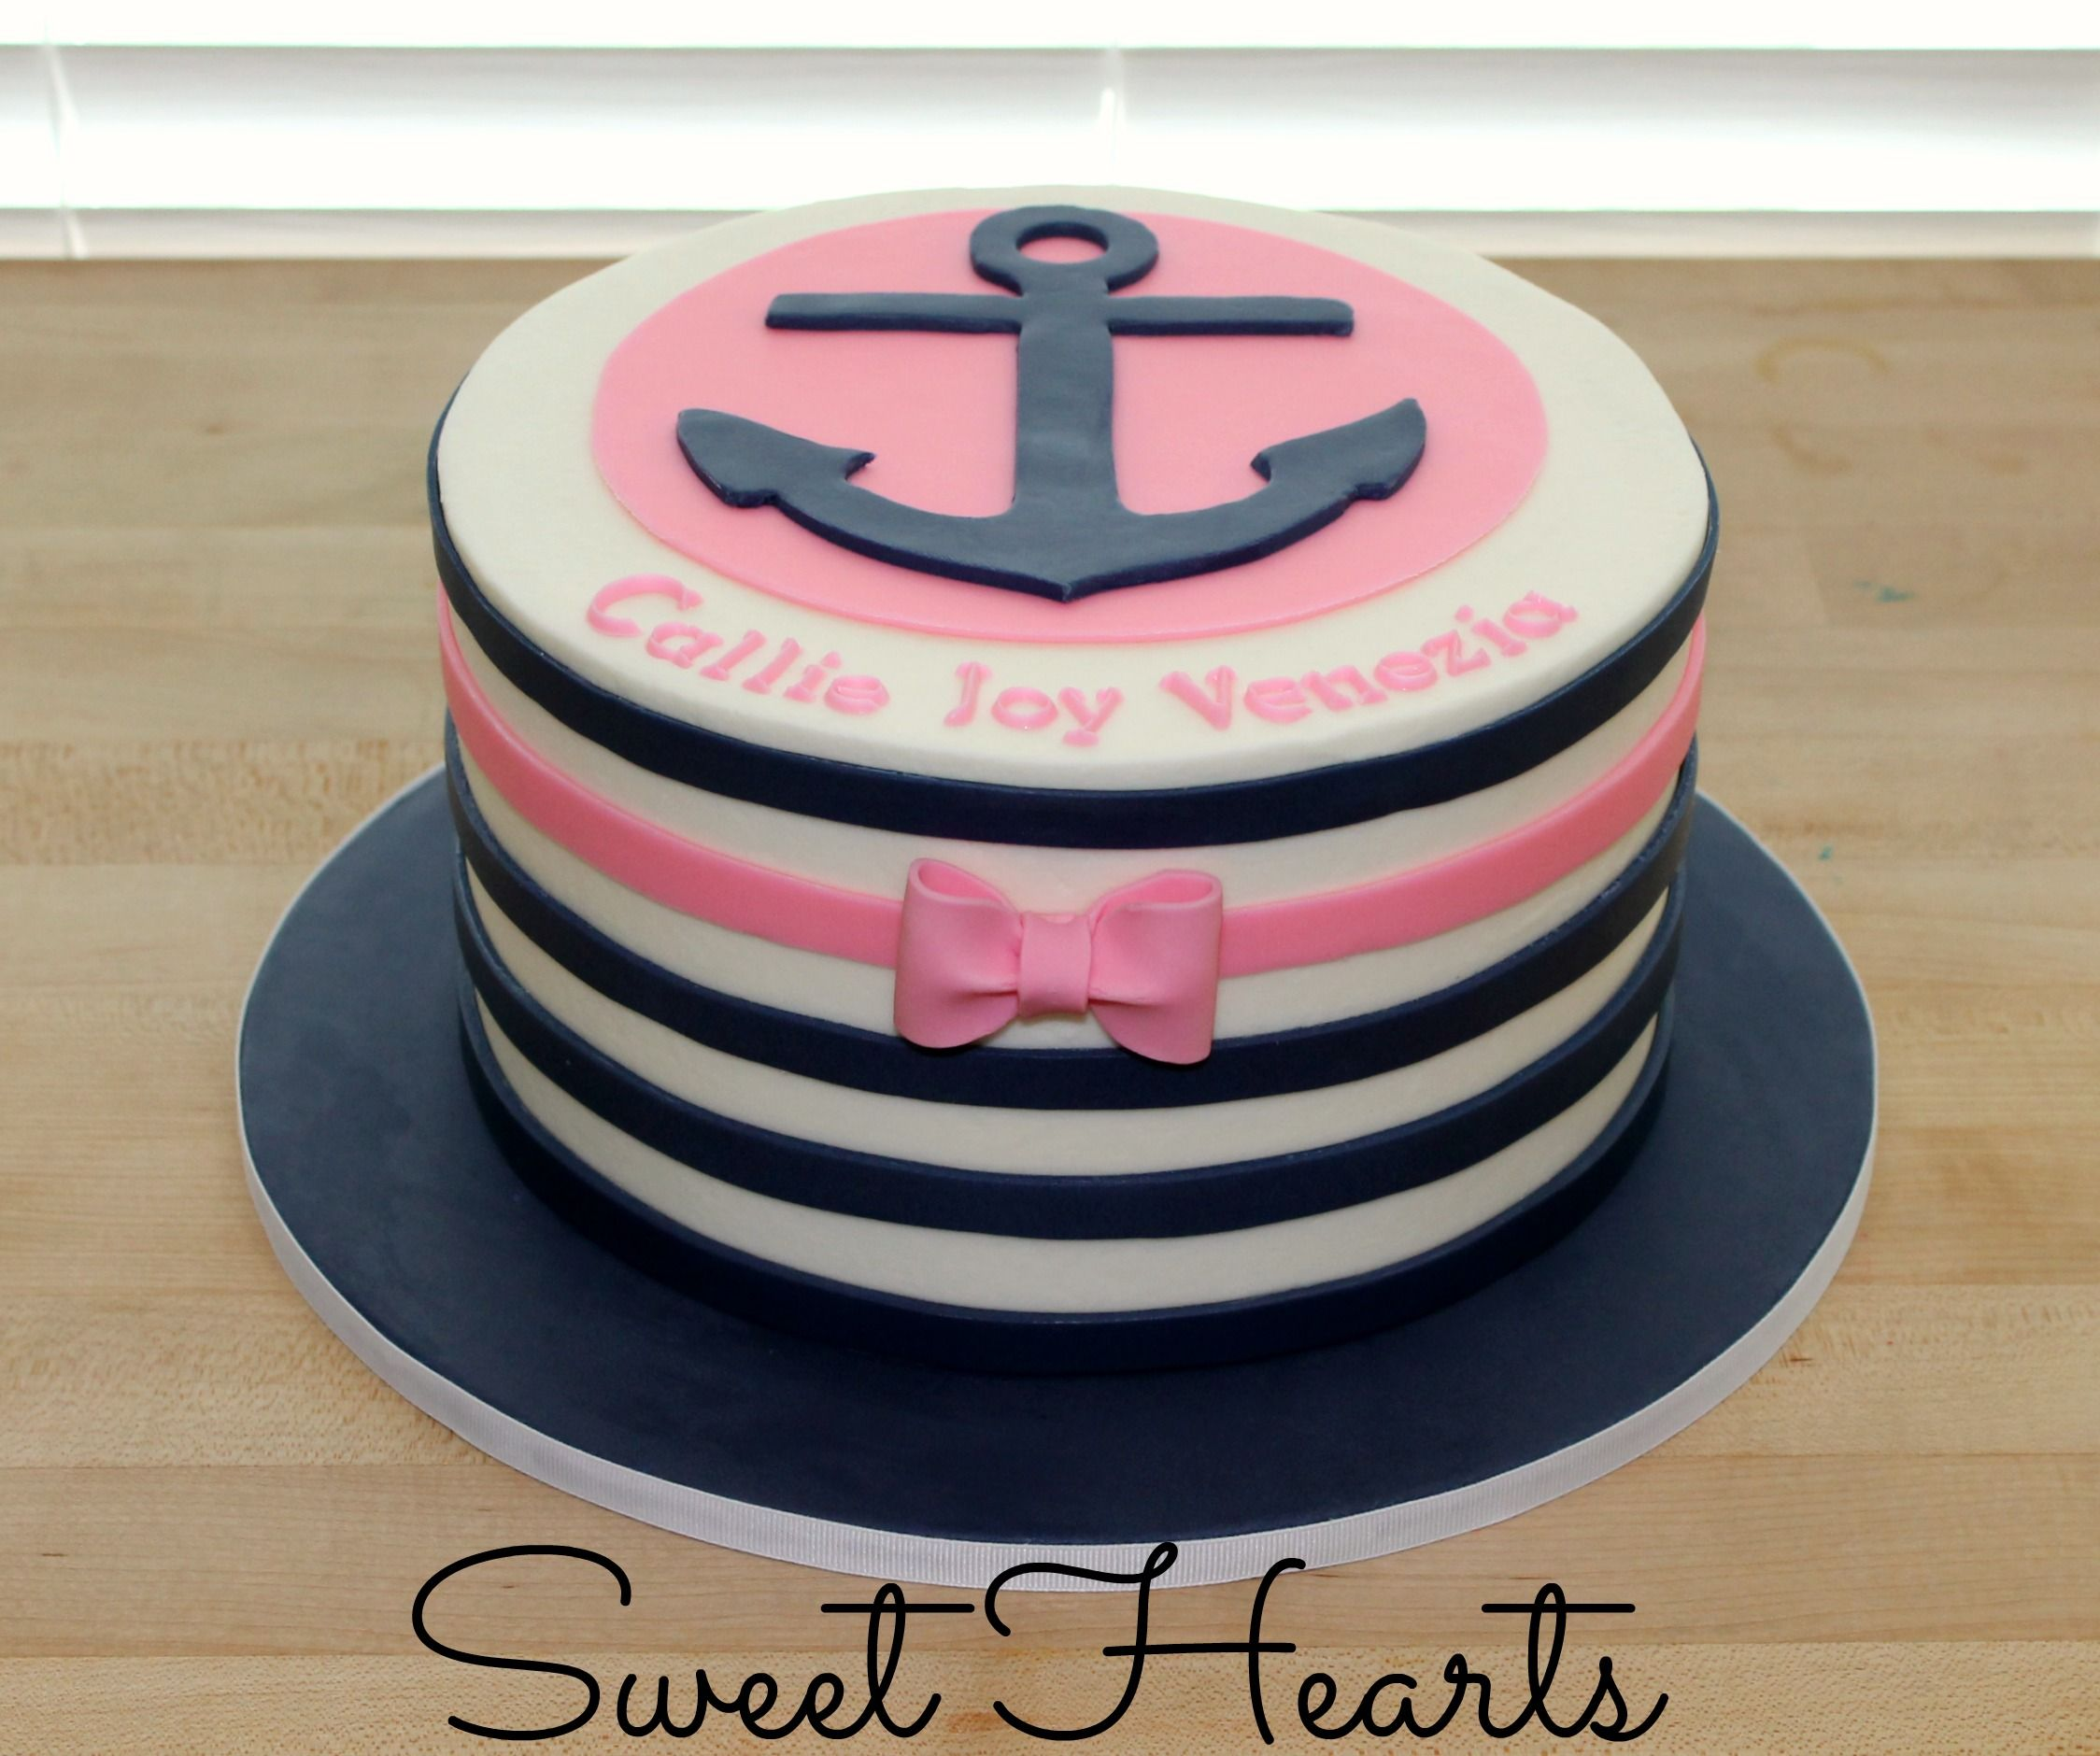 Peachy My Cute Anchor Cake Facebook Com Sweethearts3 Anchor Cakes Funny Birthday Cards Online Alyptdamsfinfo